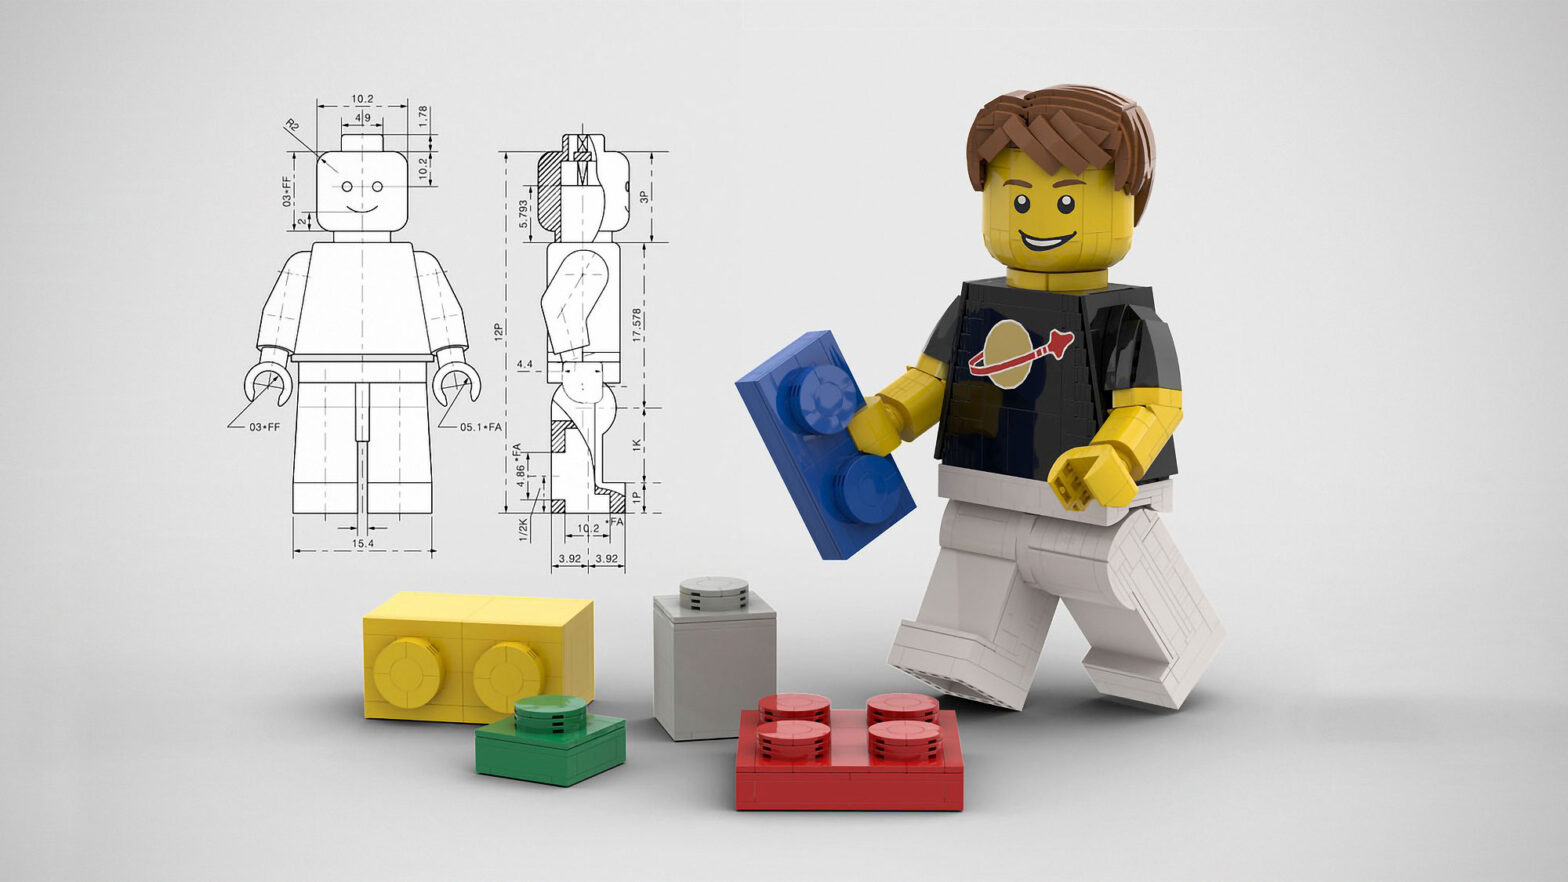 Proposed LEGO Ideas Giant Minifig by Seb_E